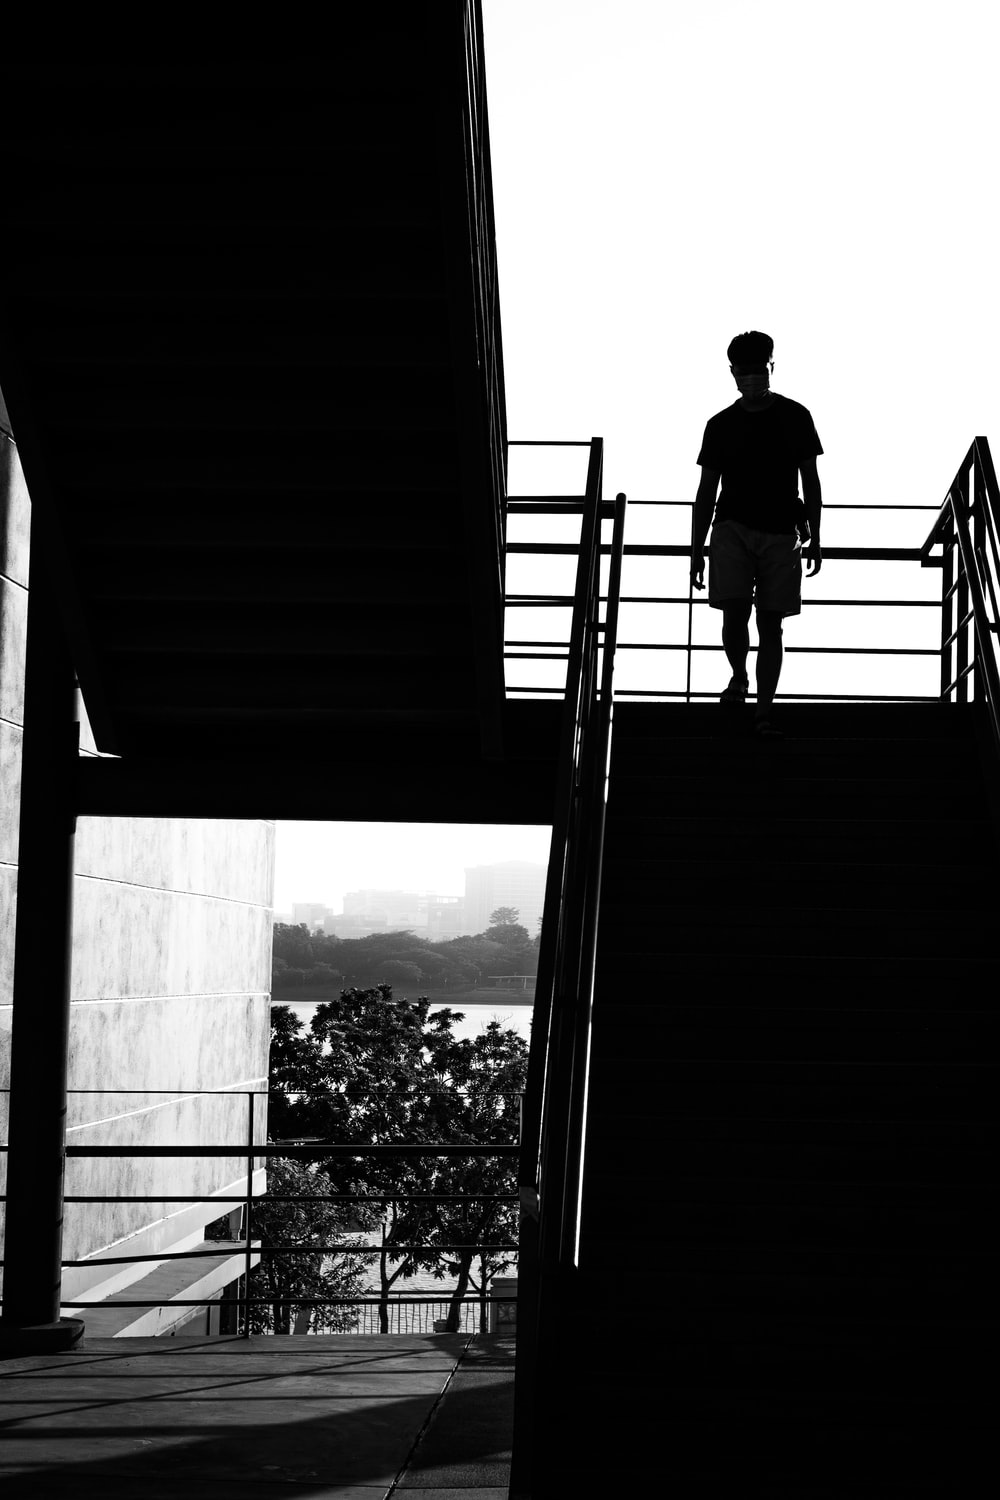 man in black jacket standing on stairs